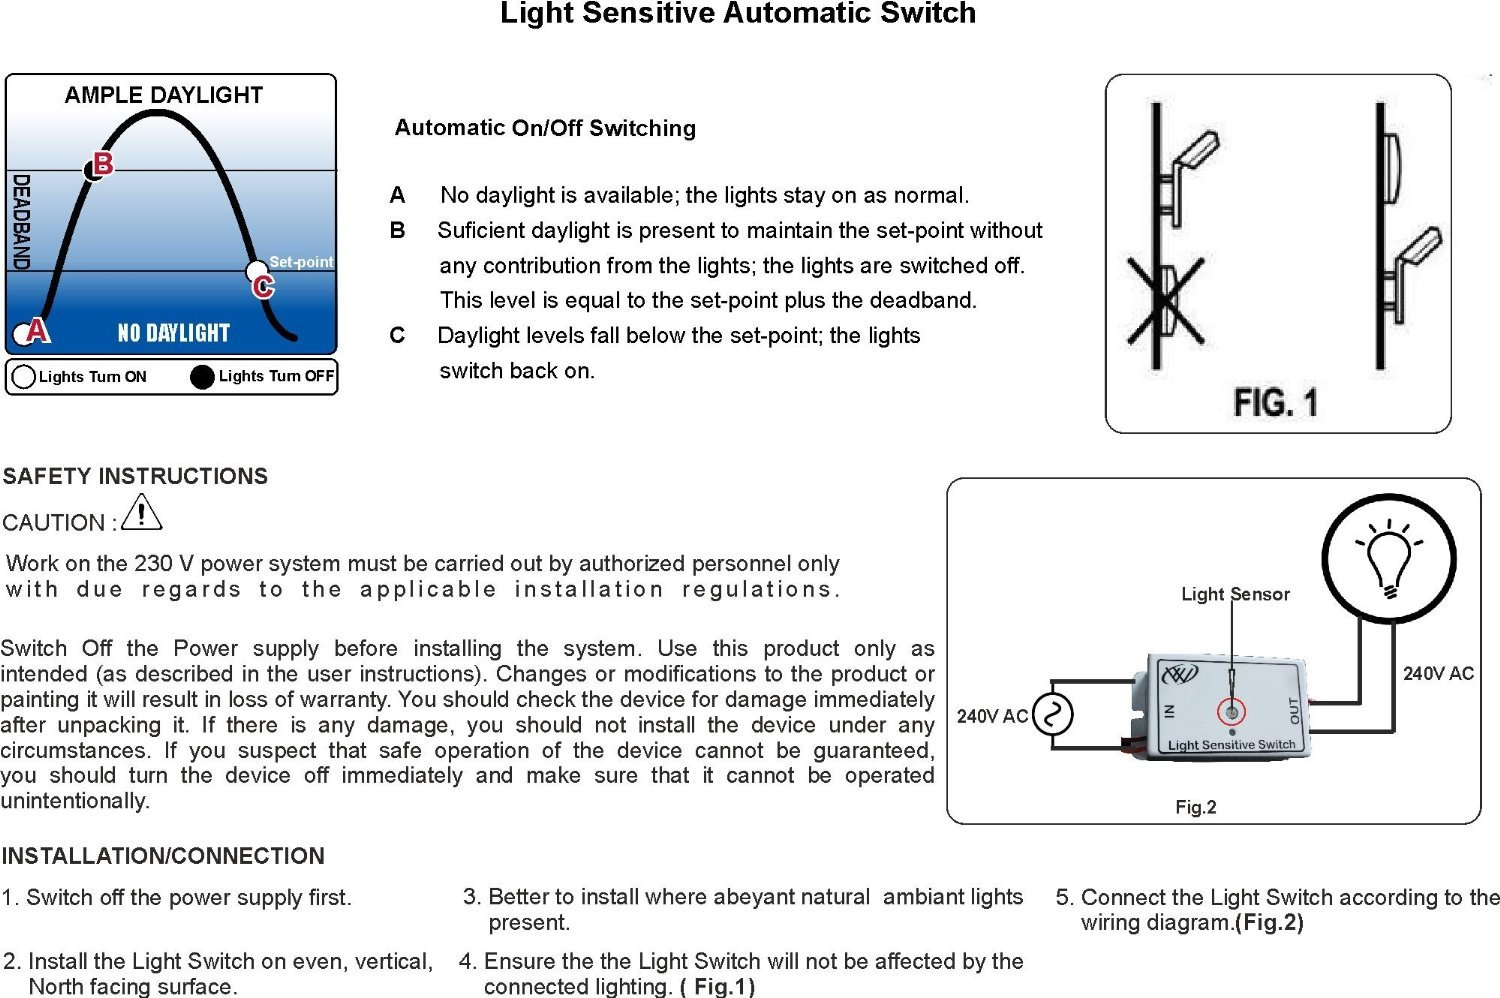 Day Night Switch Light Sensor Automatic Home 5 Best Images Of Photocell Wiring Diagram Automation